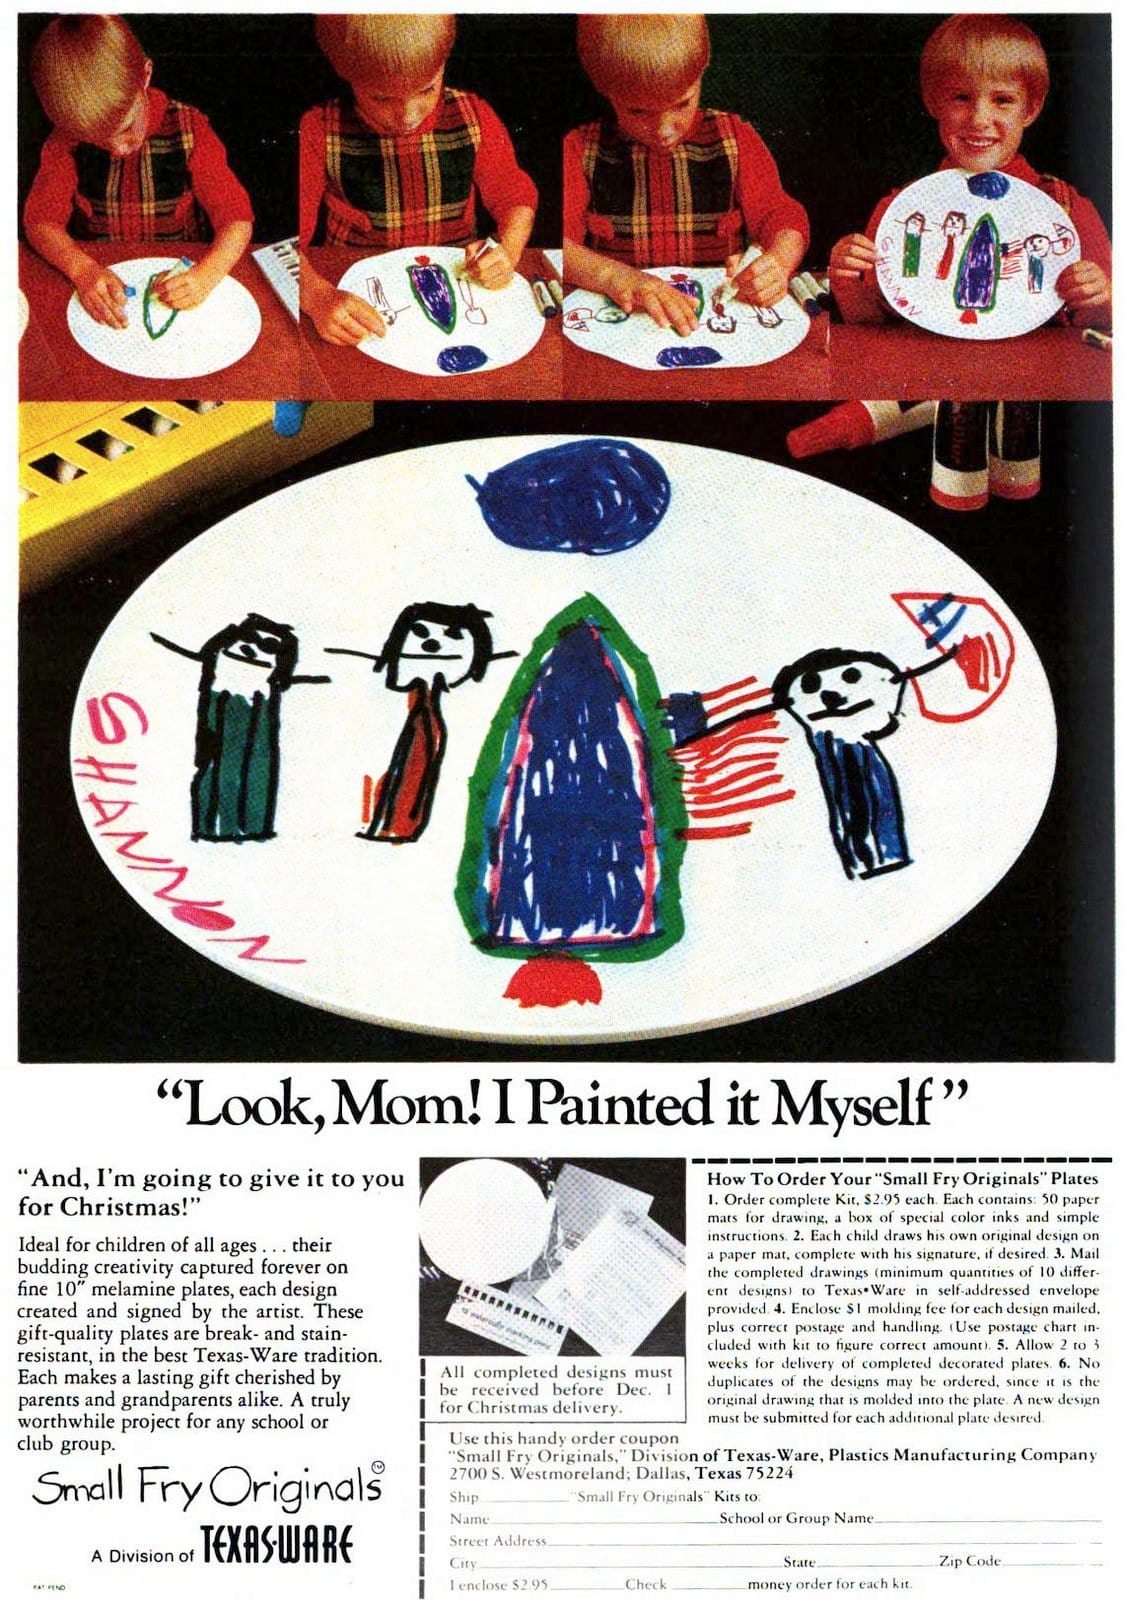 Make your own plate - Melamine craft gift 1970